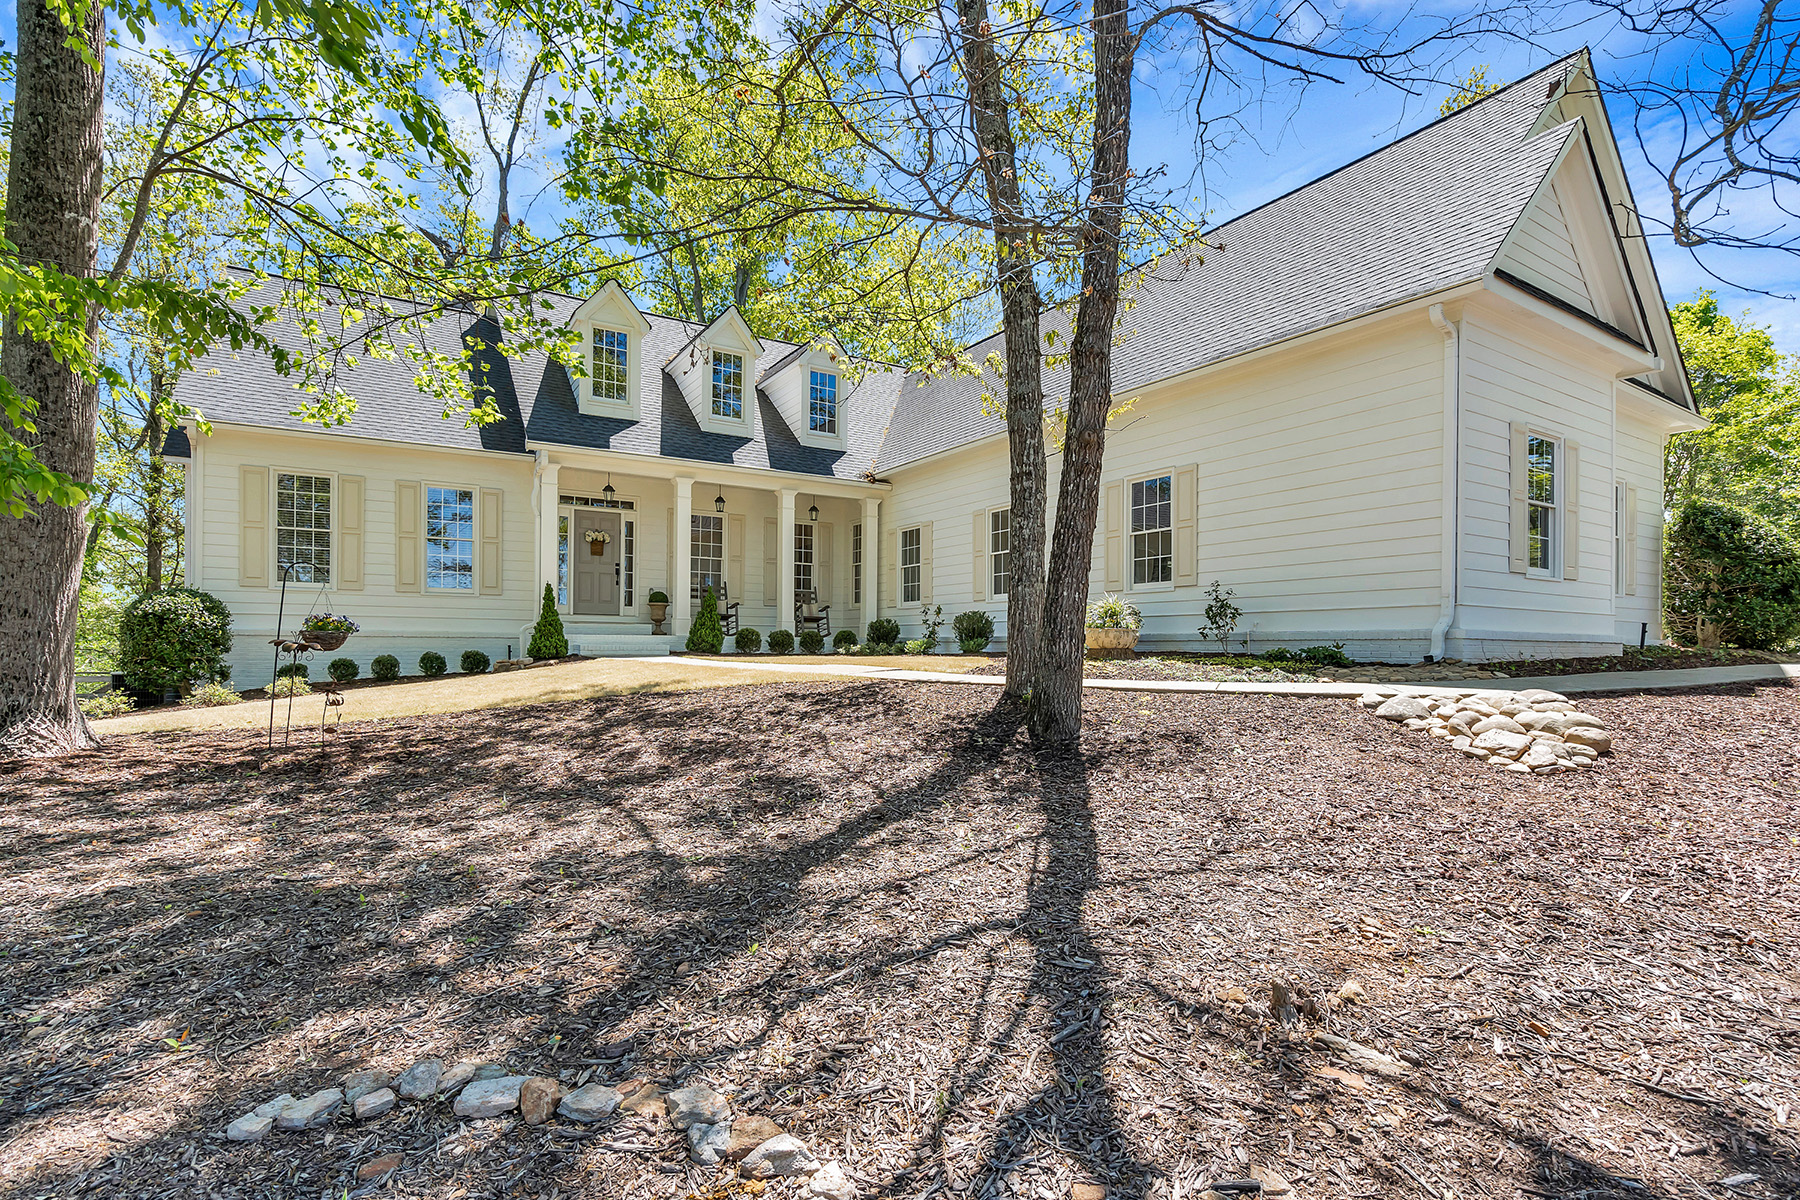 Single Family Homes for Sale at A Breathtaking Renovation In Canton's Hickory Woods 1020 Hickory Woods Way Canton, Georgia 30115 United States